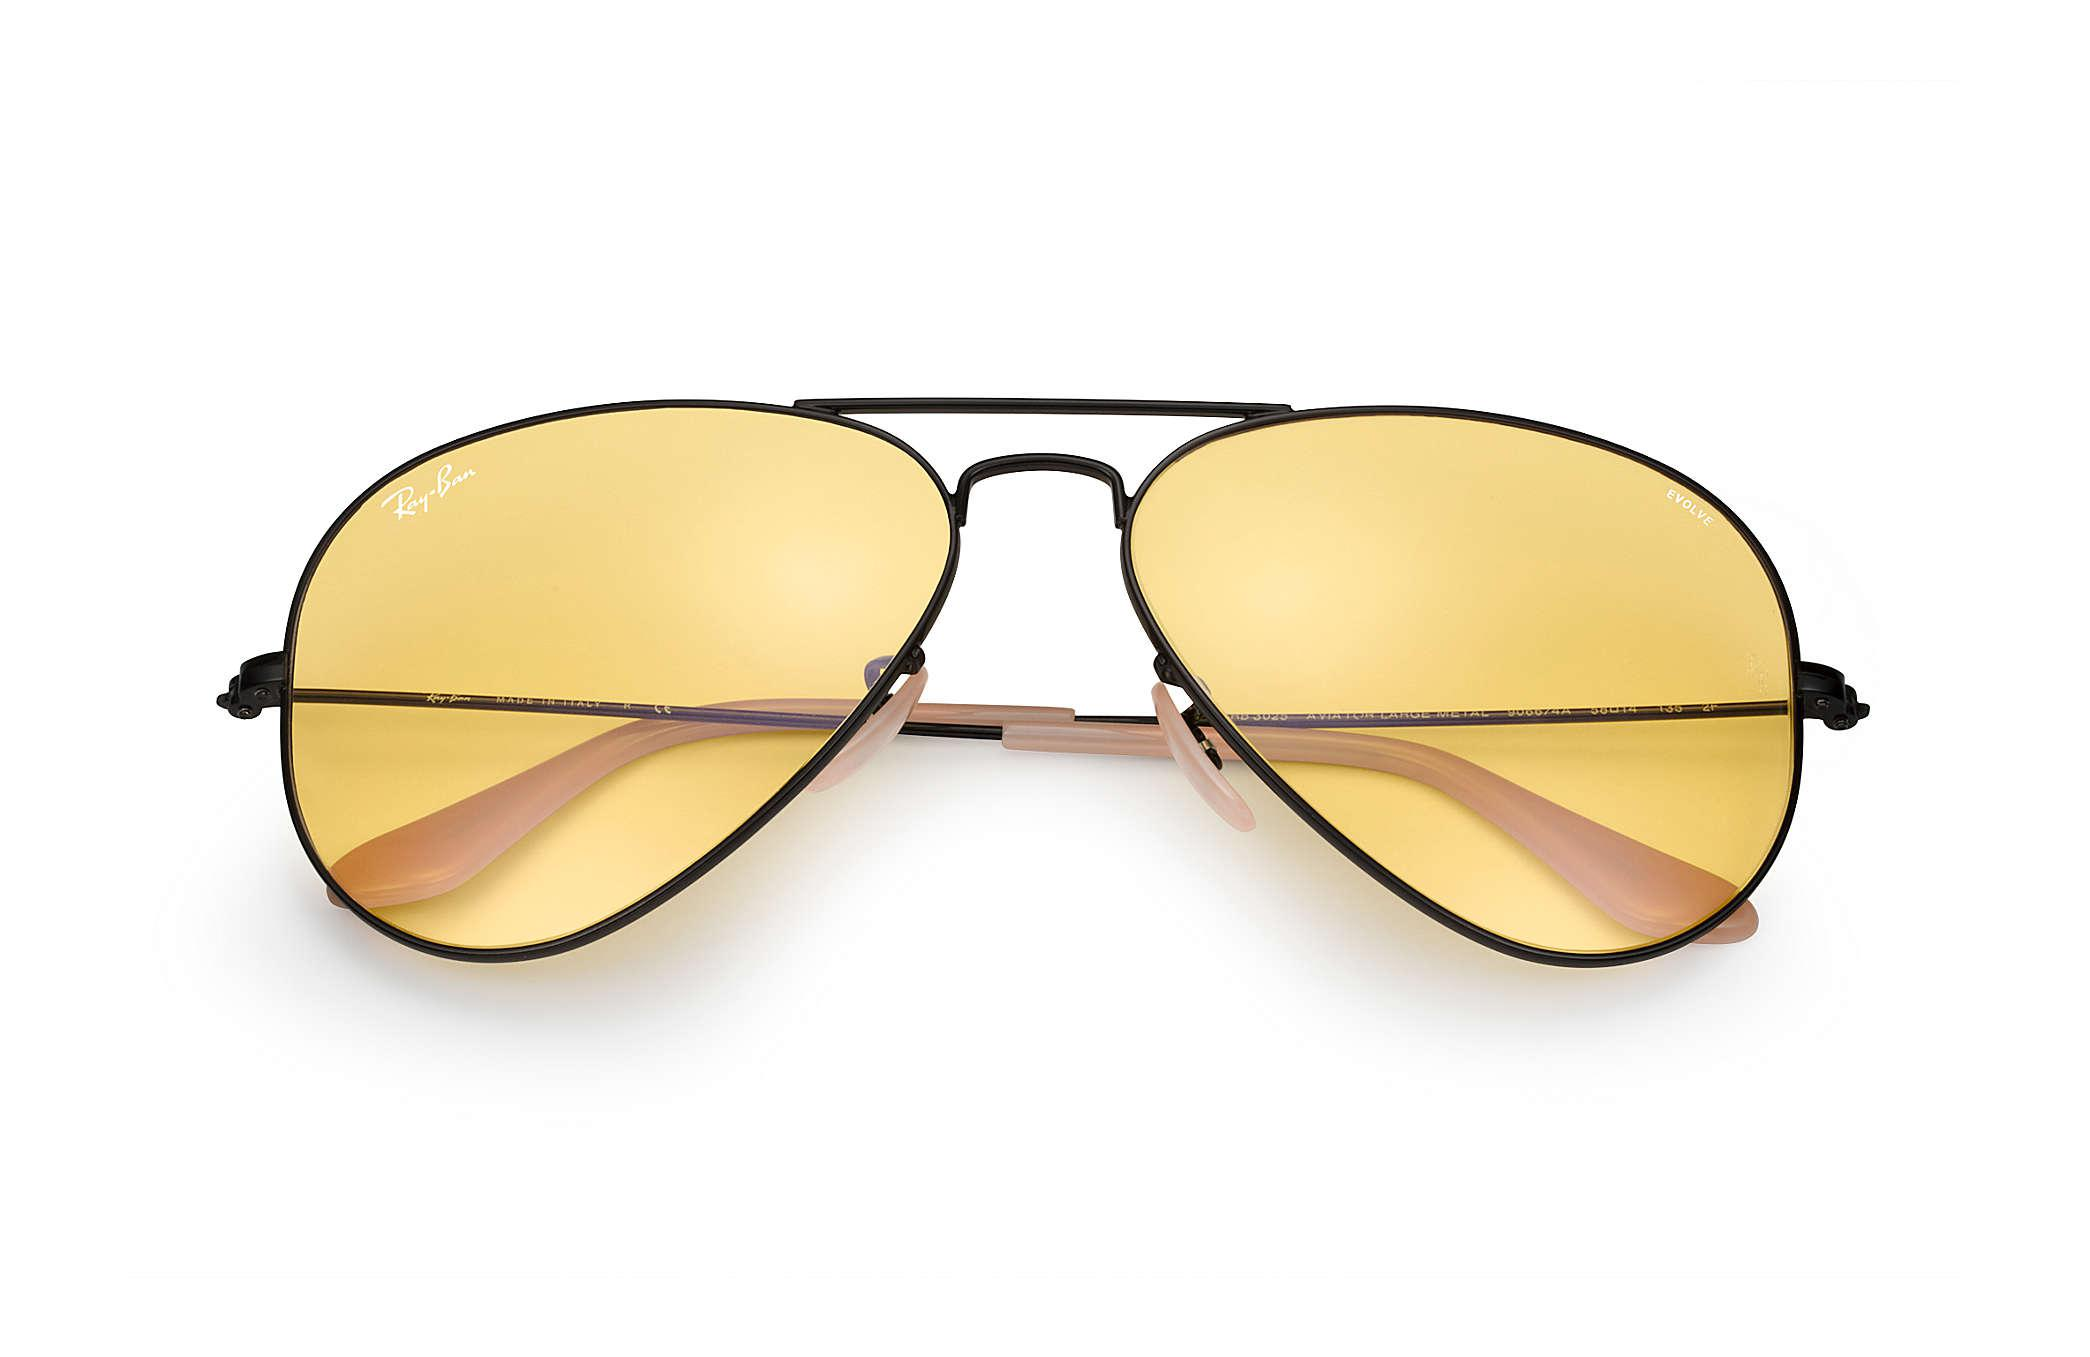 76c98578c9c Ray-Ban - Multicolor Aviator Evolve for Men - Lyst. View fullscreen